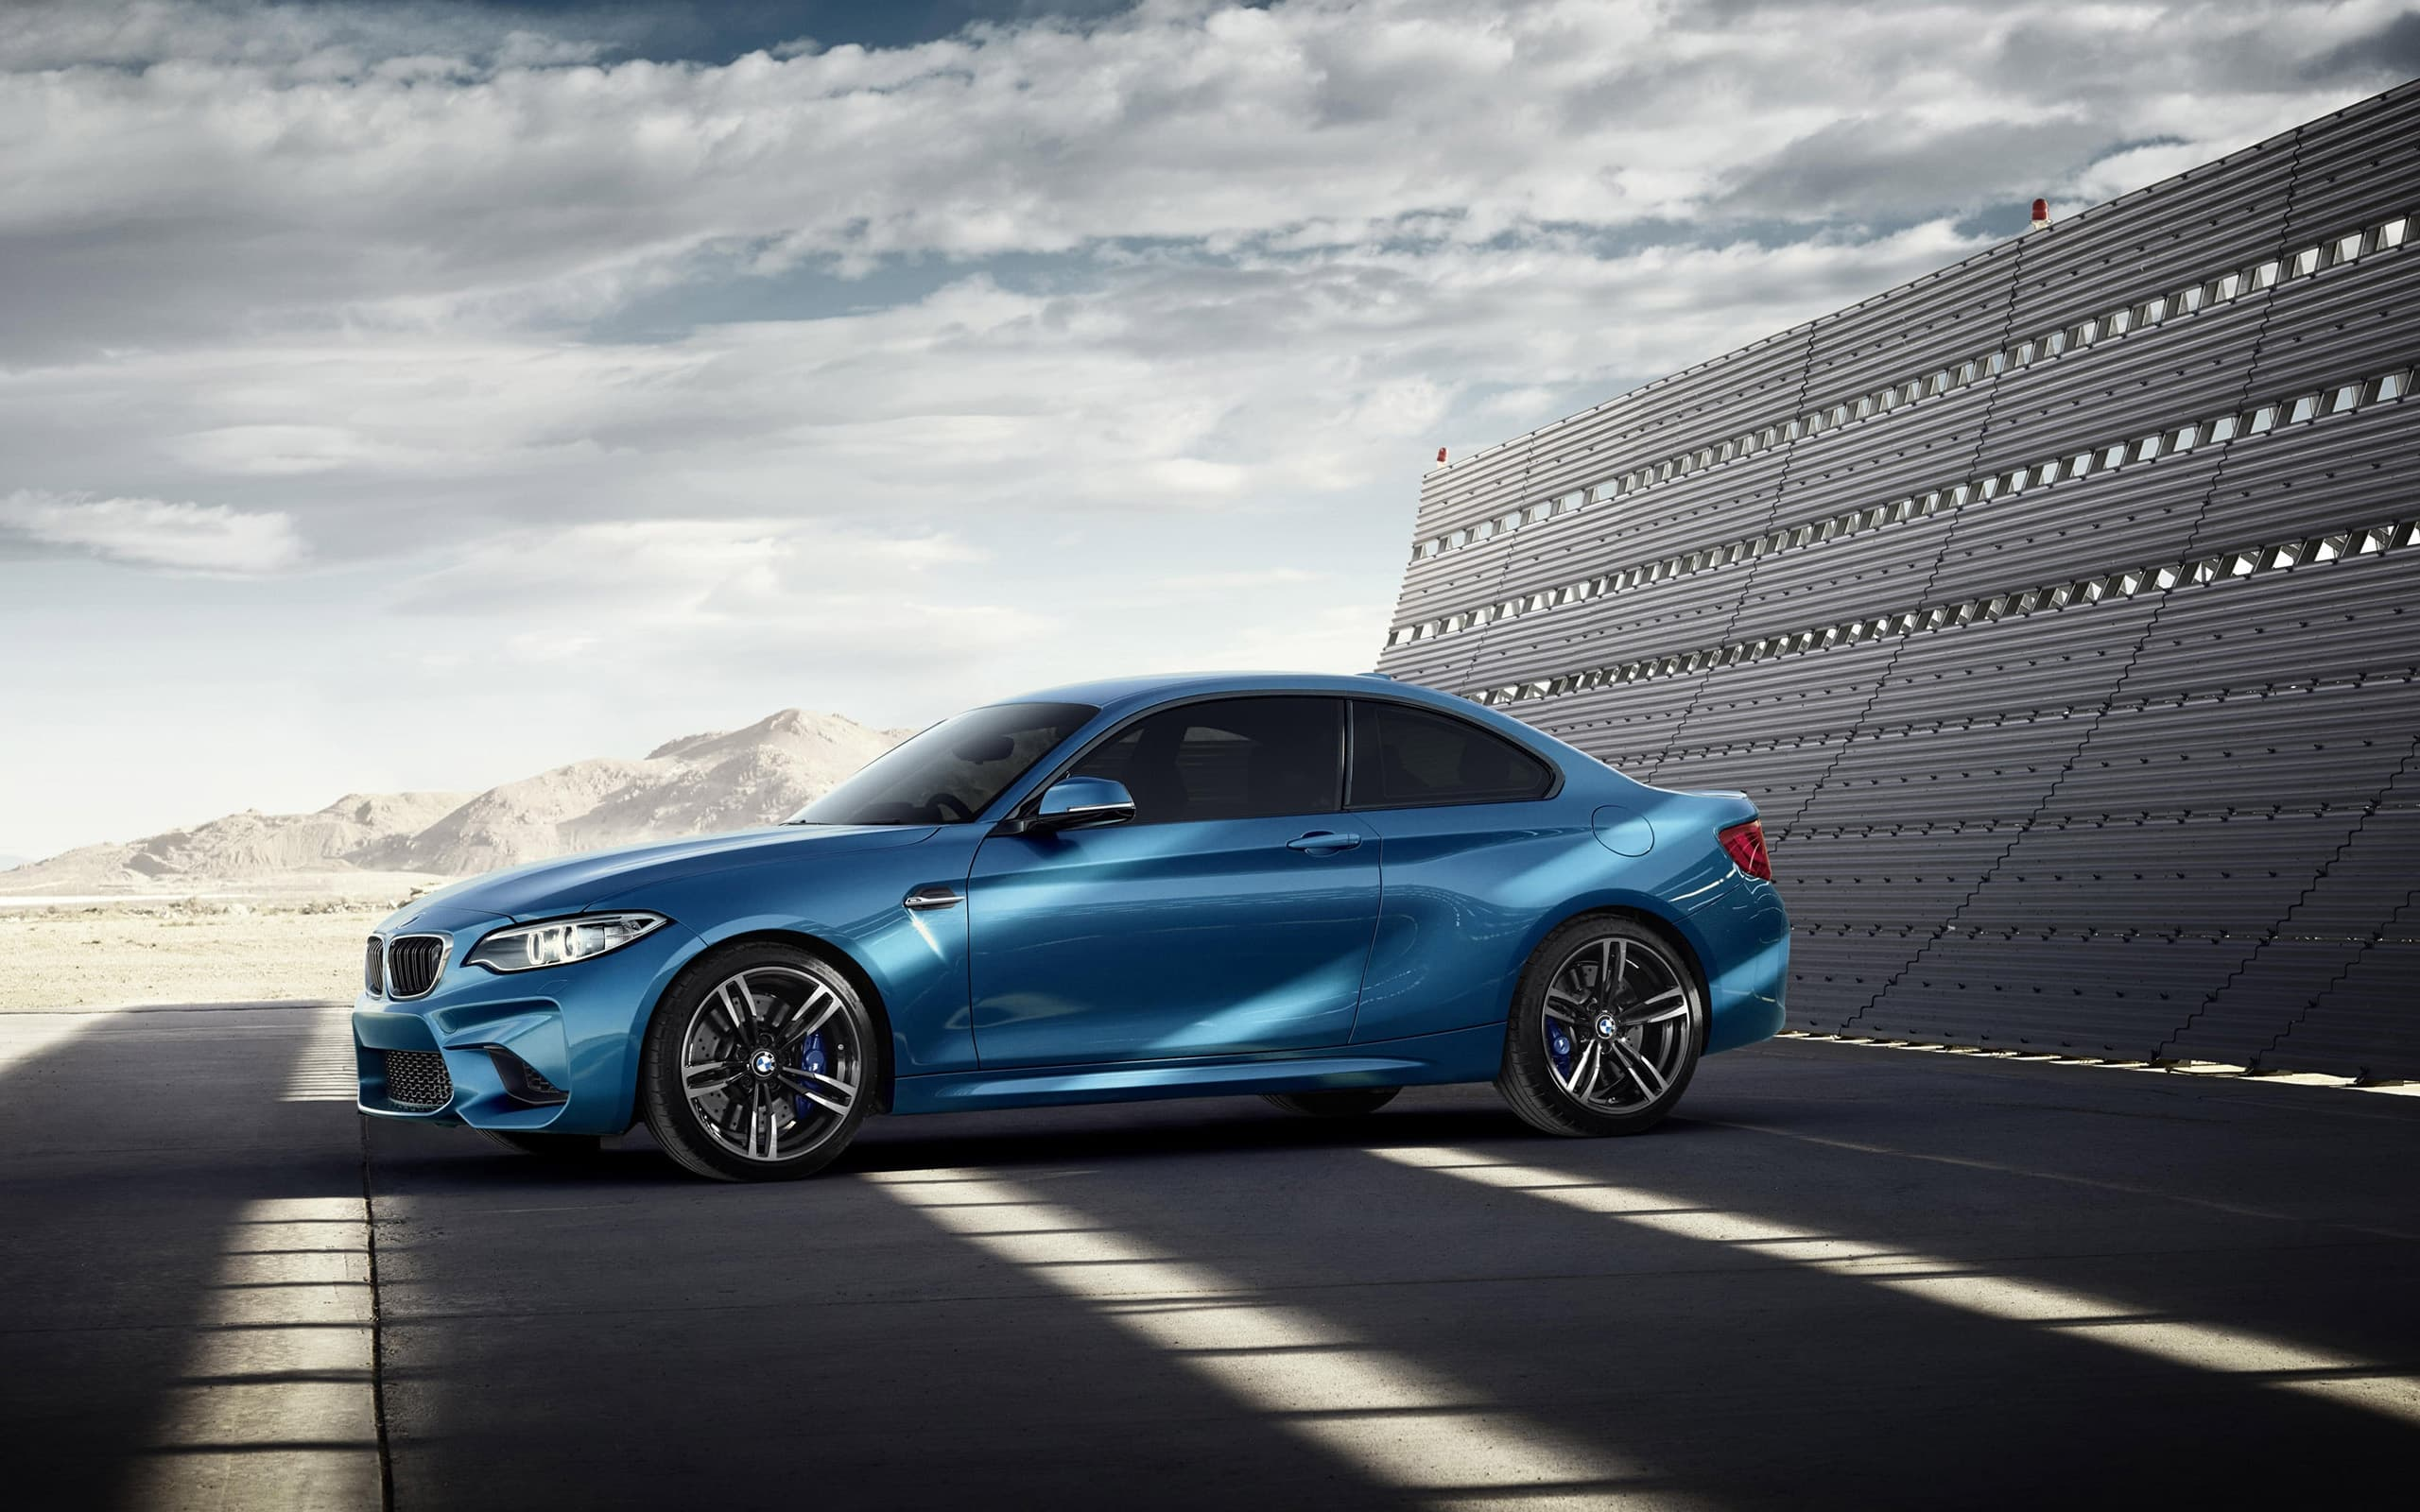 2560x1600 - BMW M2 Coupe Wallpapers 10